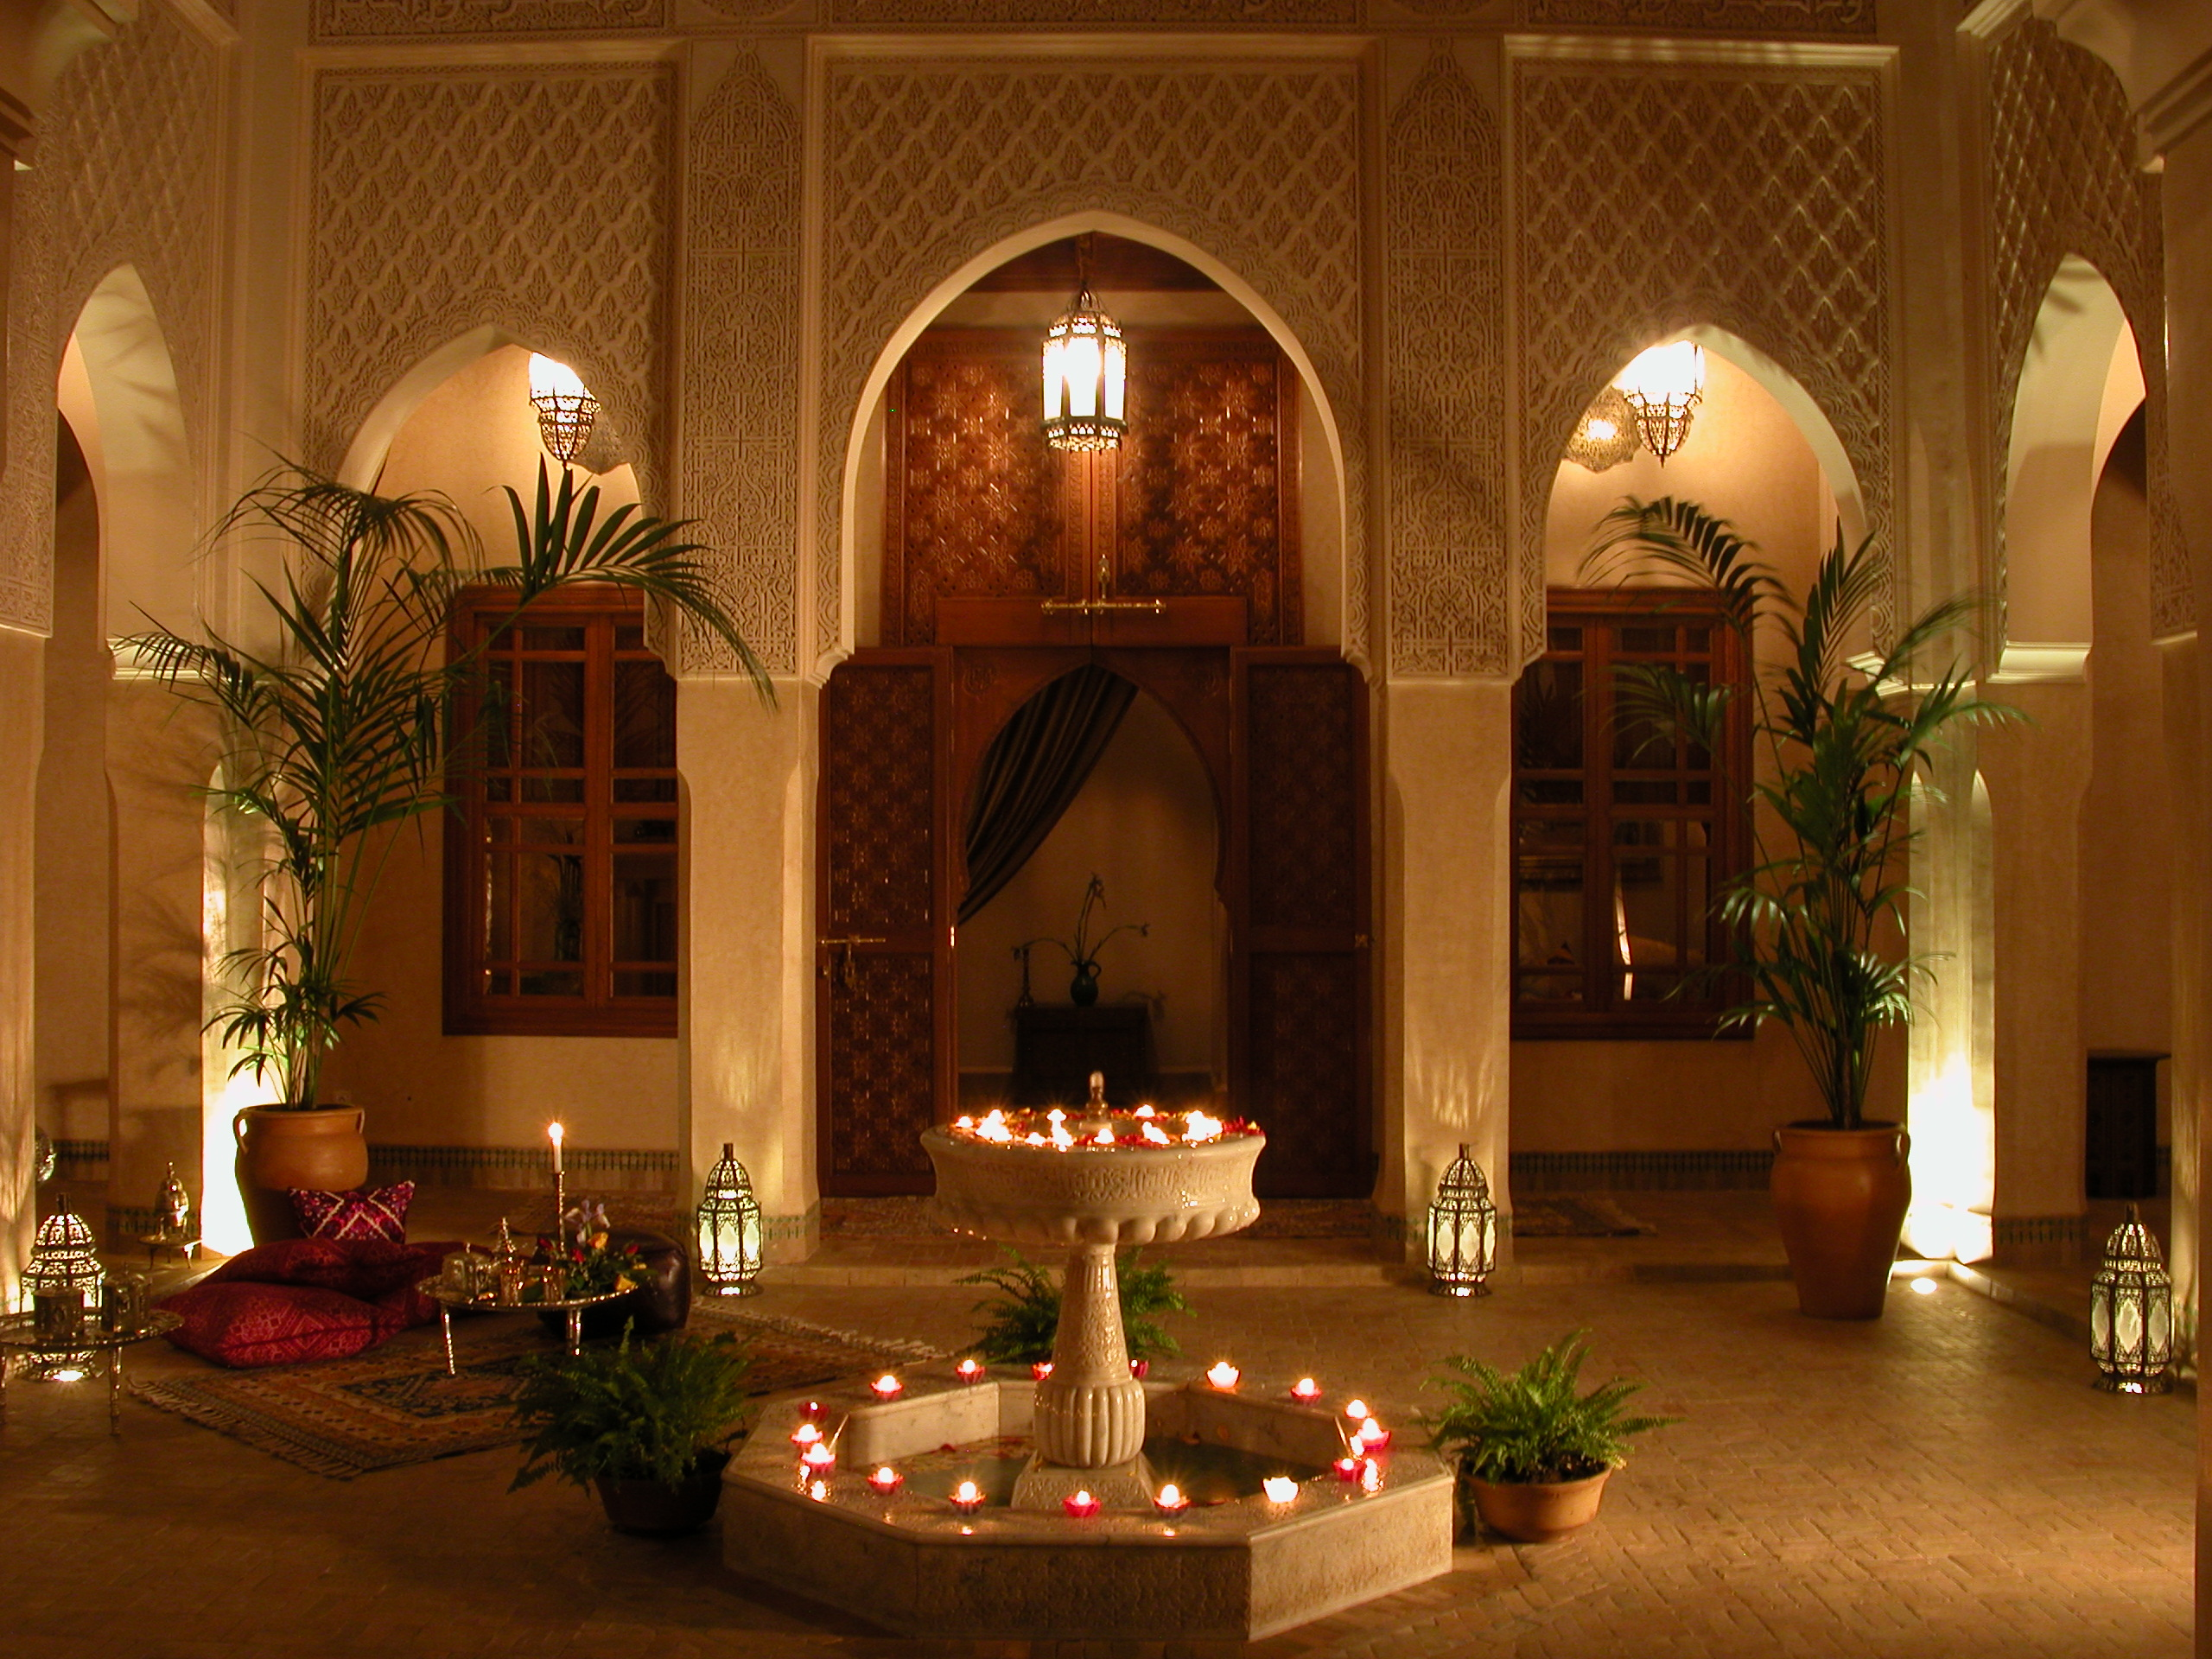 Luxury hotels of morocco your morocco tour guide for Top 10 riads in marrakech